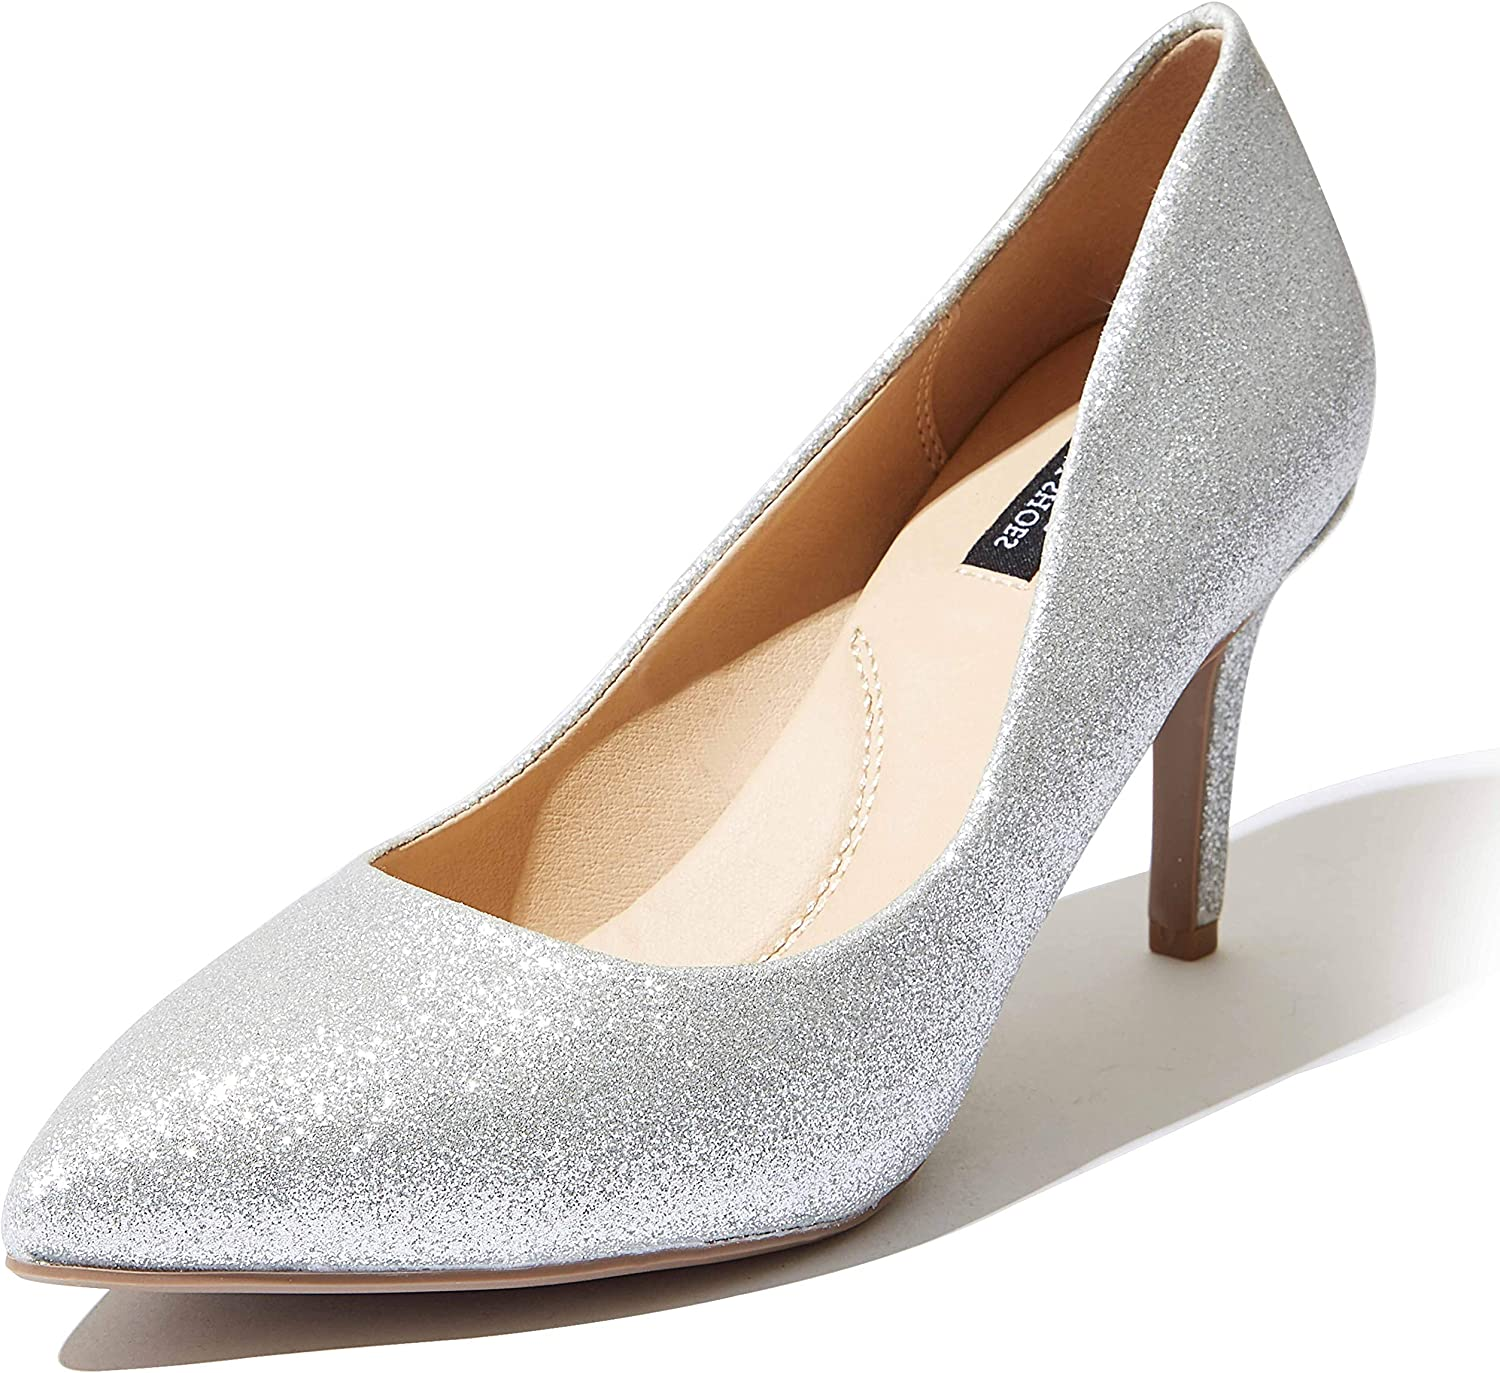 Banquets Ladies Pointed Toe Stilettos Court Shoes Dress Pumps Closed Toe Shoes for Offices Parties Work Clubs